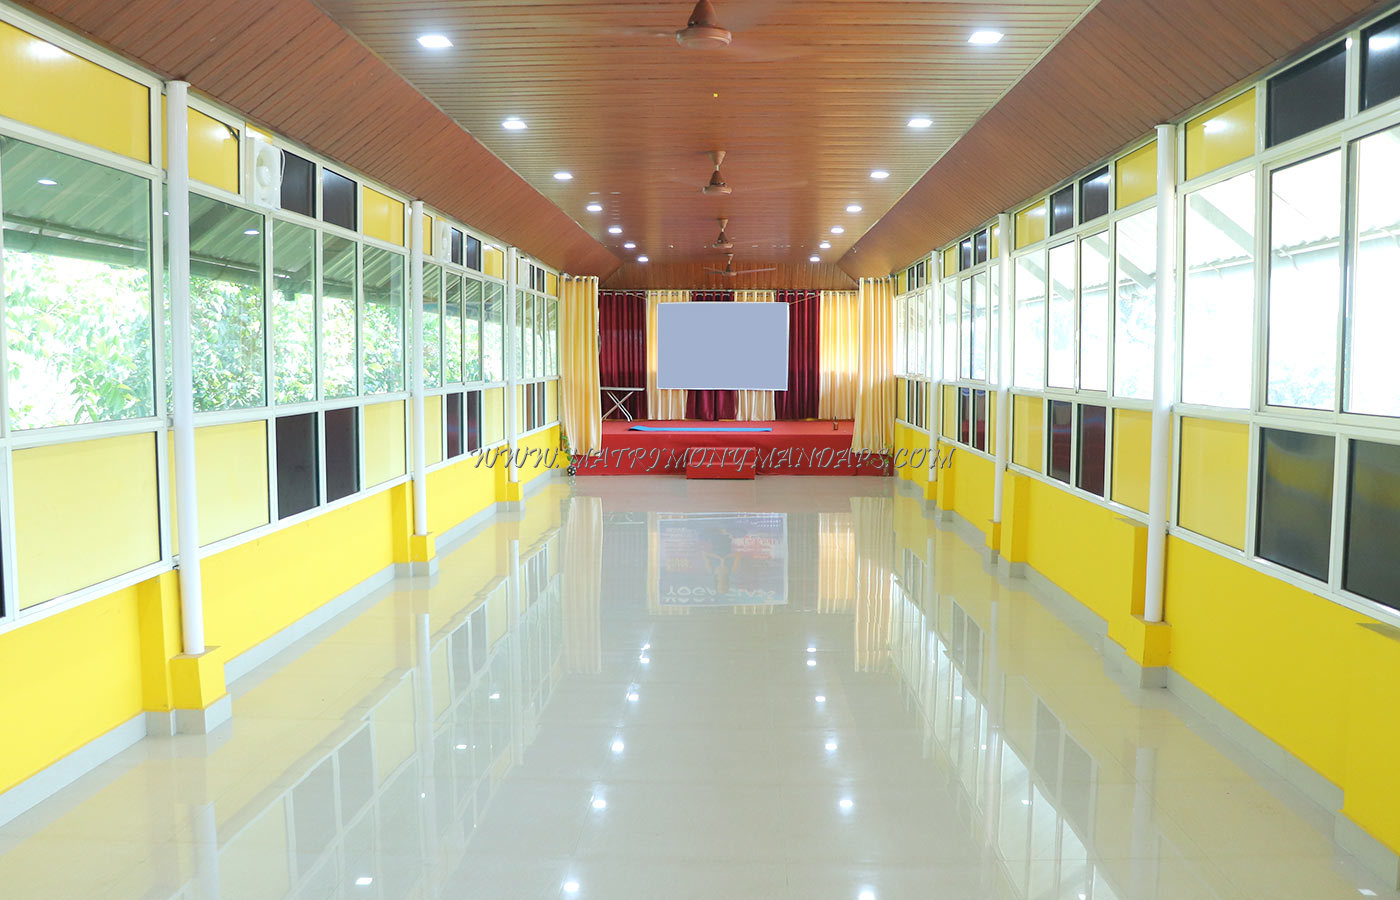 Find the availability of the Palathinkal Hall in Tripunithura, Kochi and avail special offers